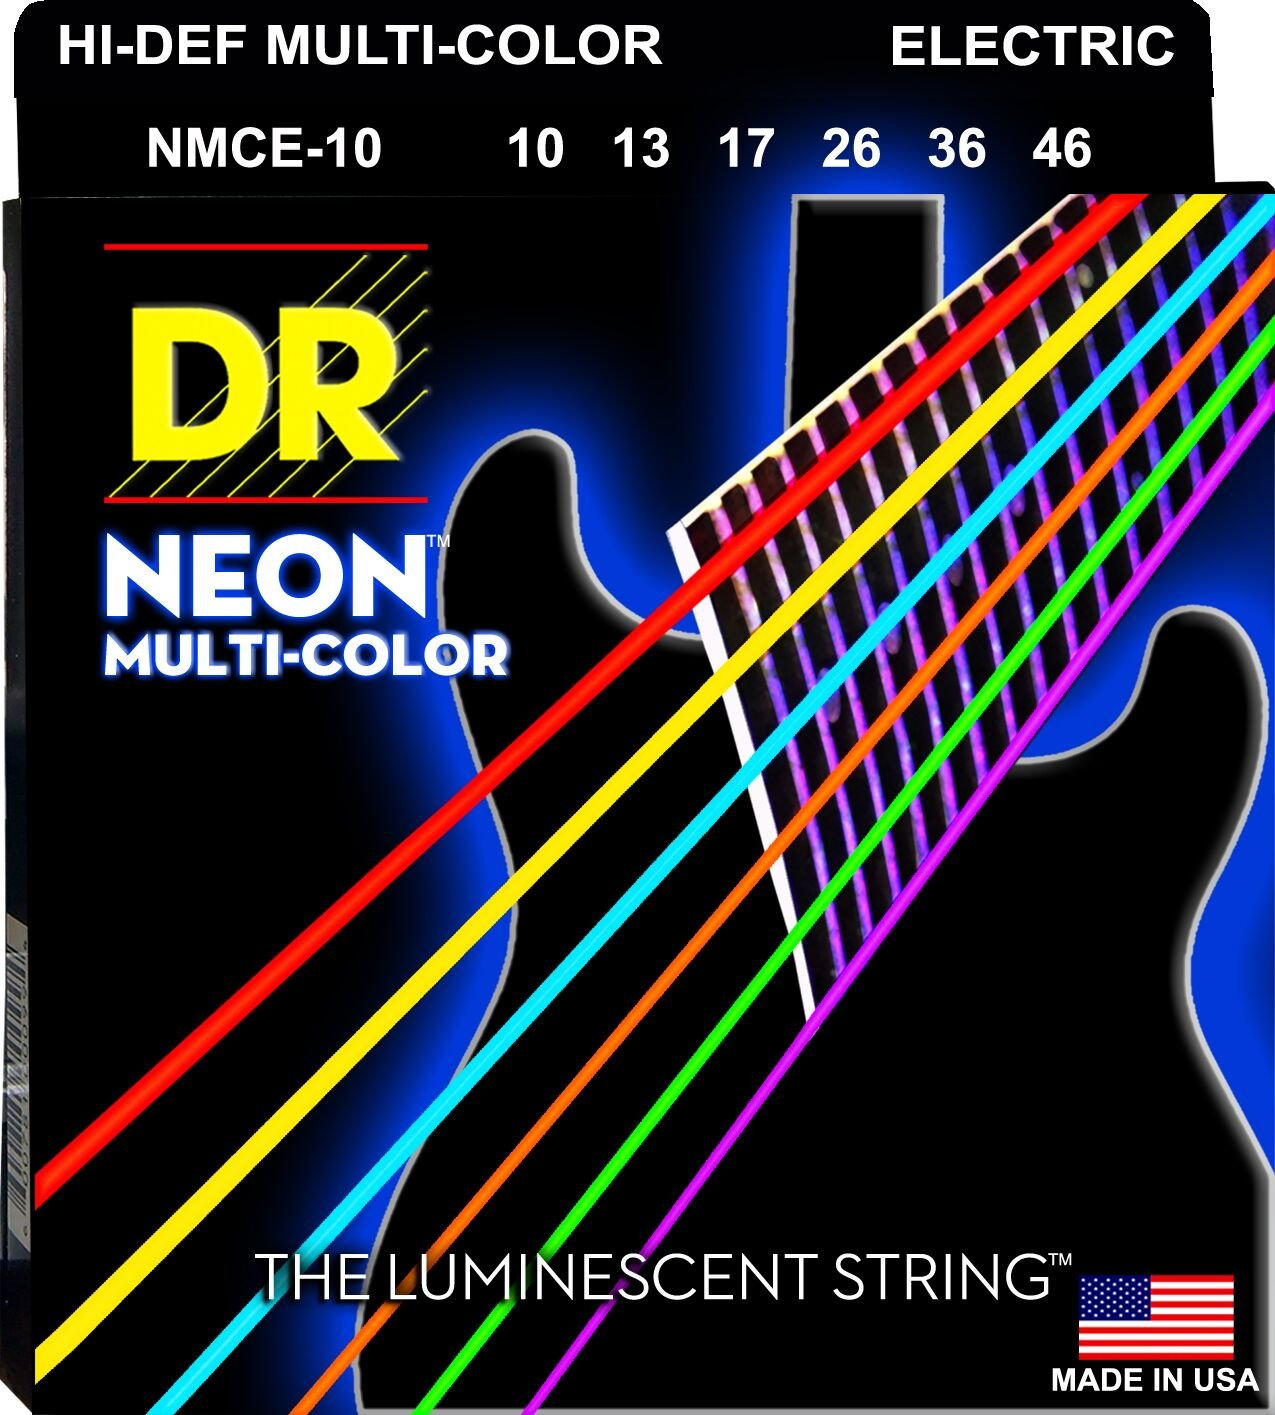 DR Strings NEON NMCE-10 Electric Guitar Strings, Hi-Def Multi-Color, Medium, 10-46